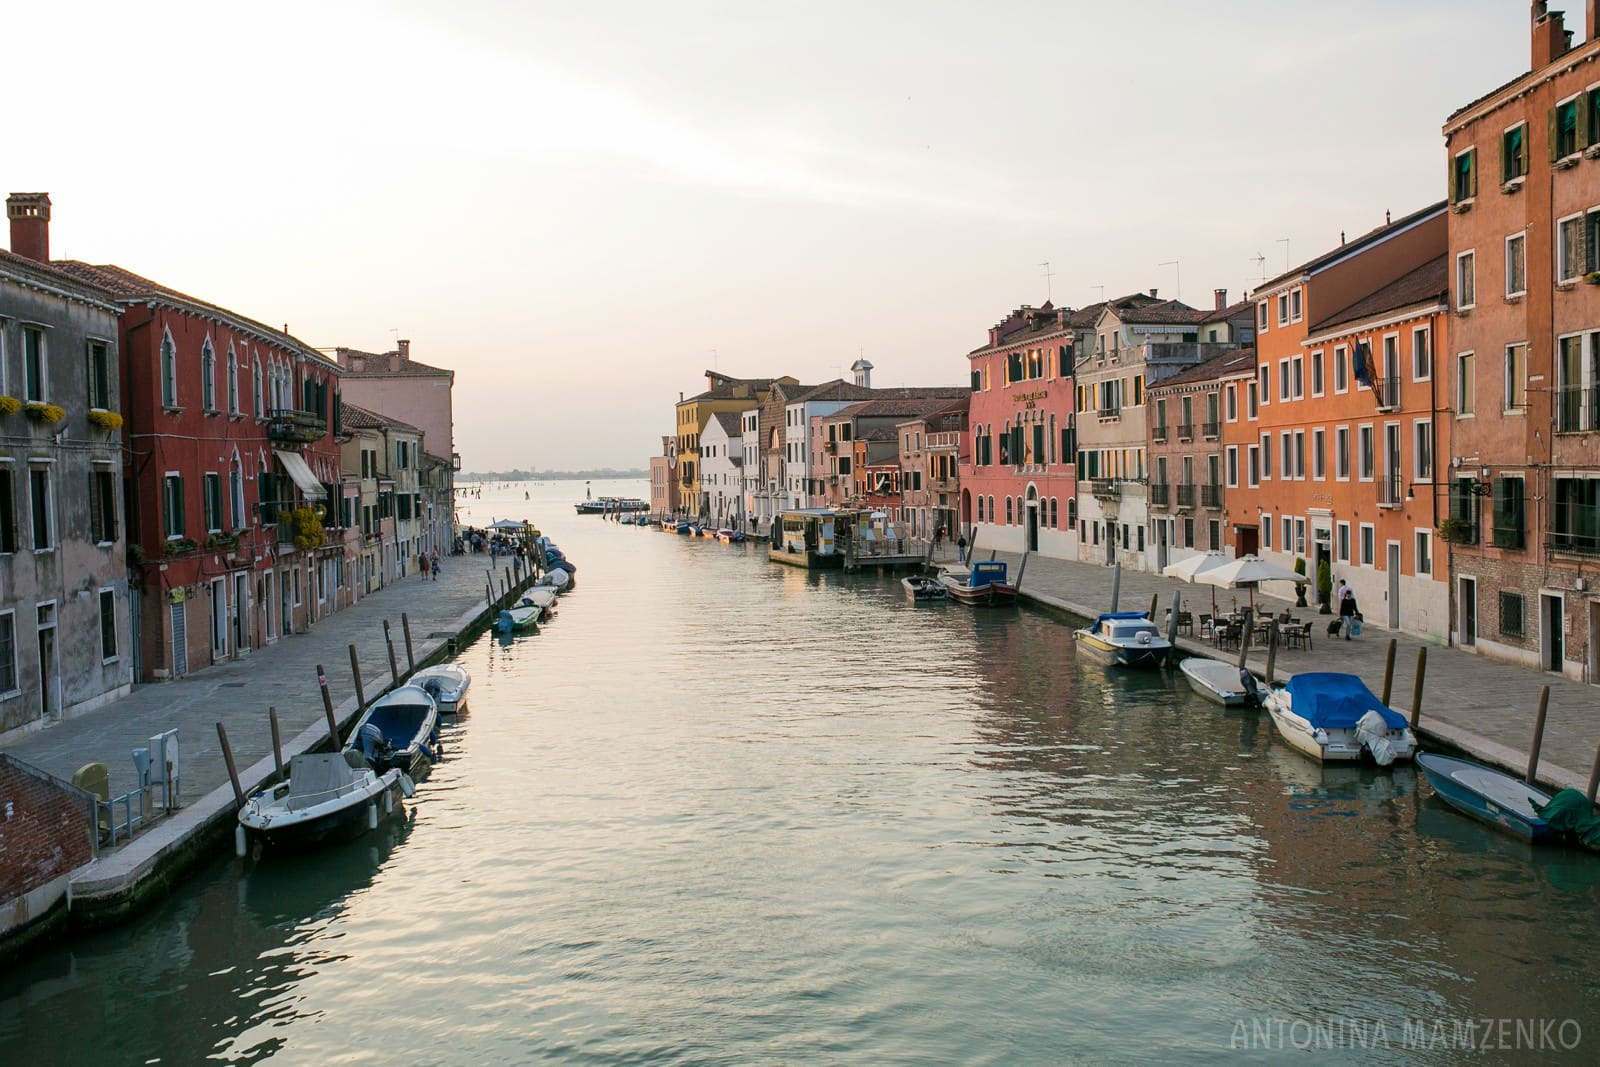 and evening view of Venice Ghetto